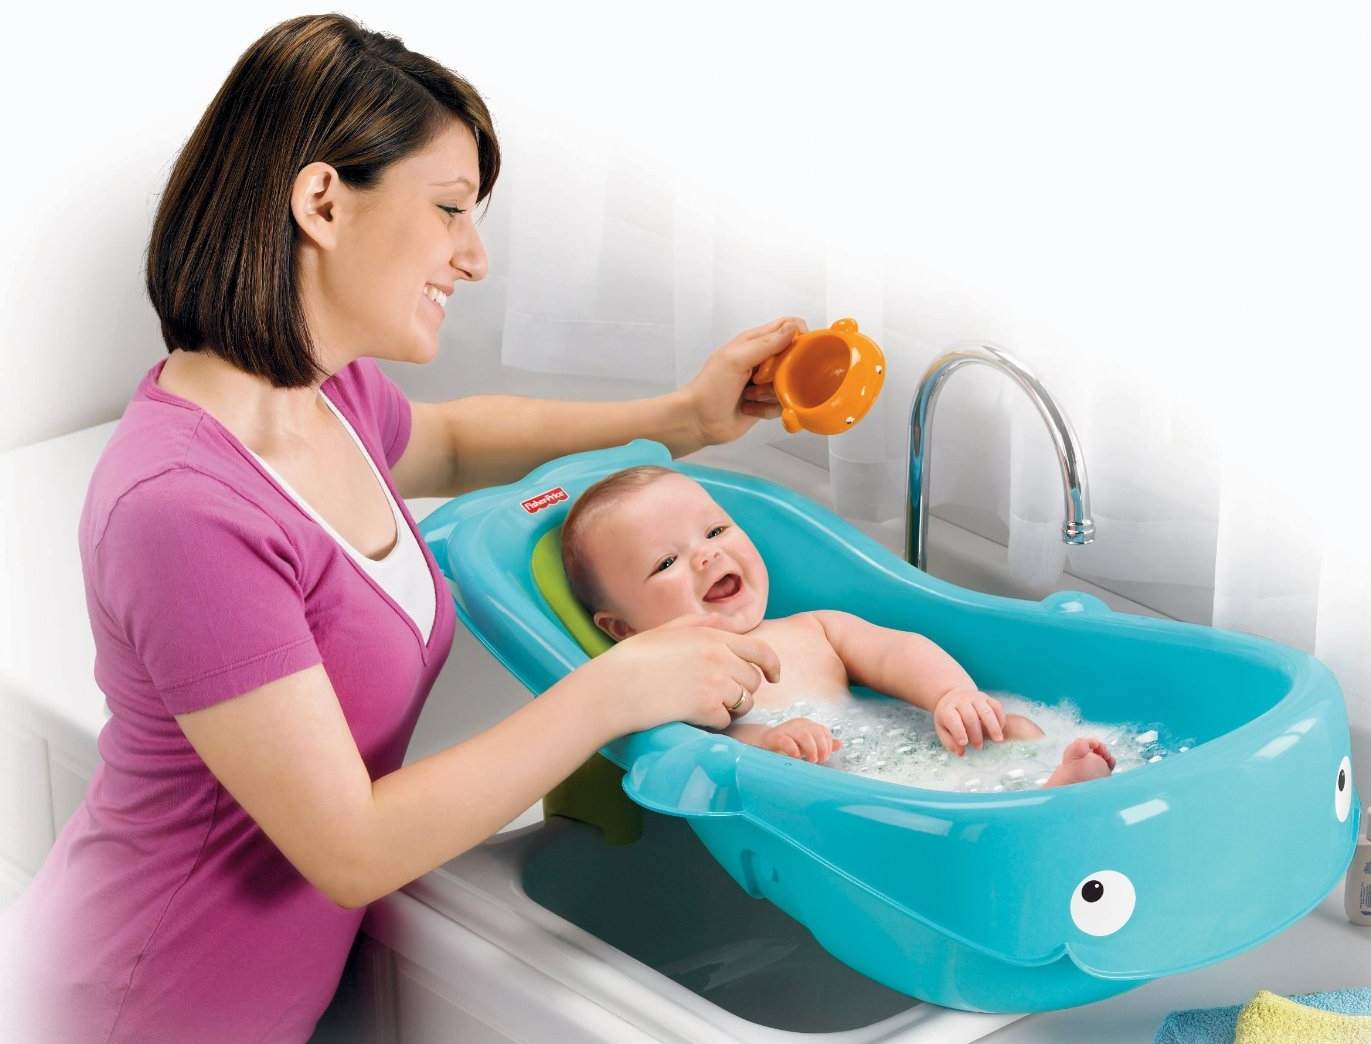 Baby from above: Baby Gear: Bath time